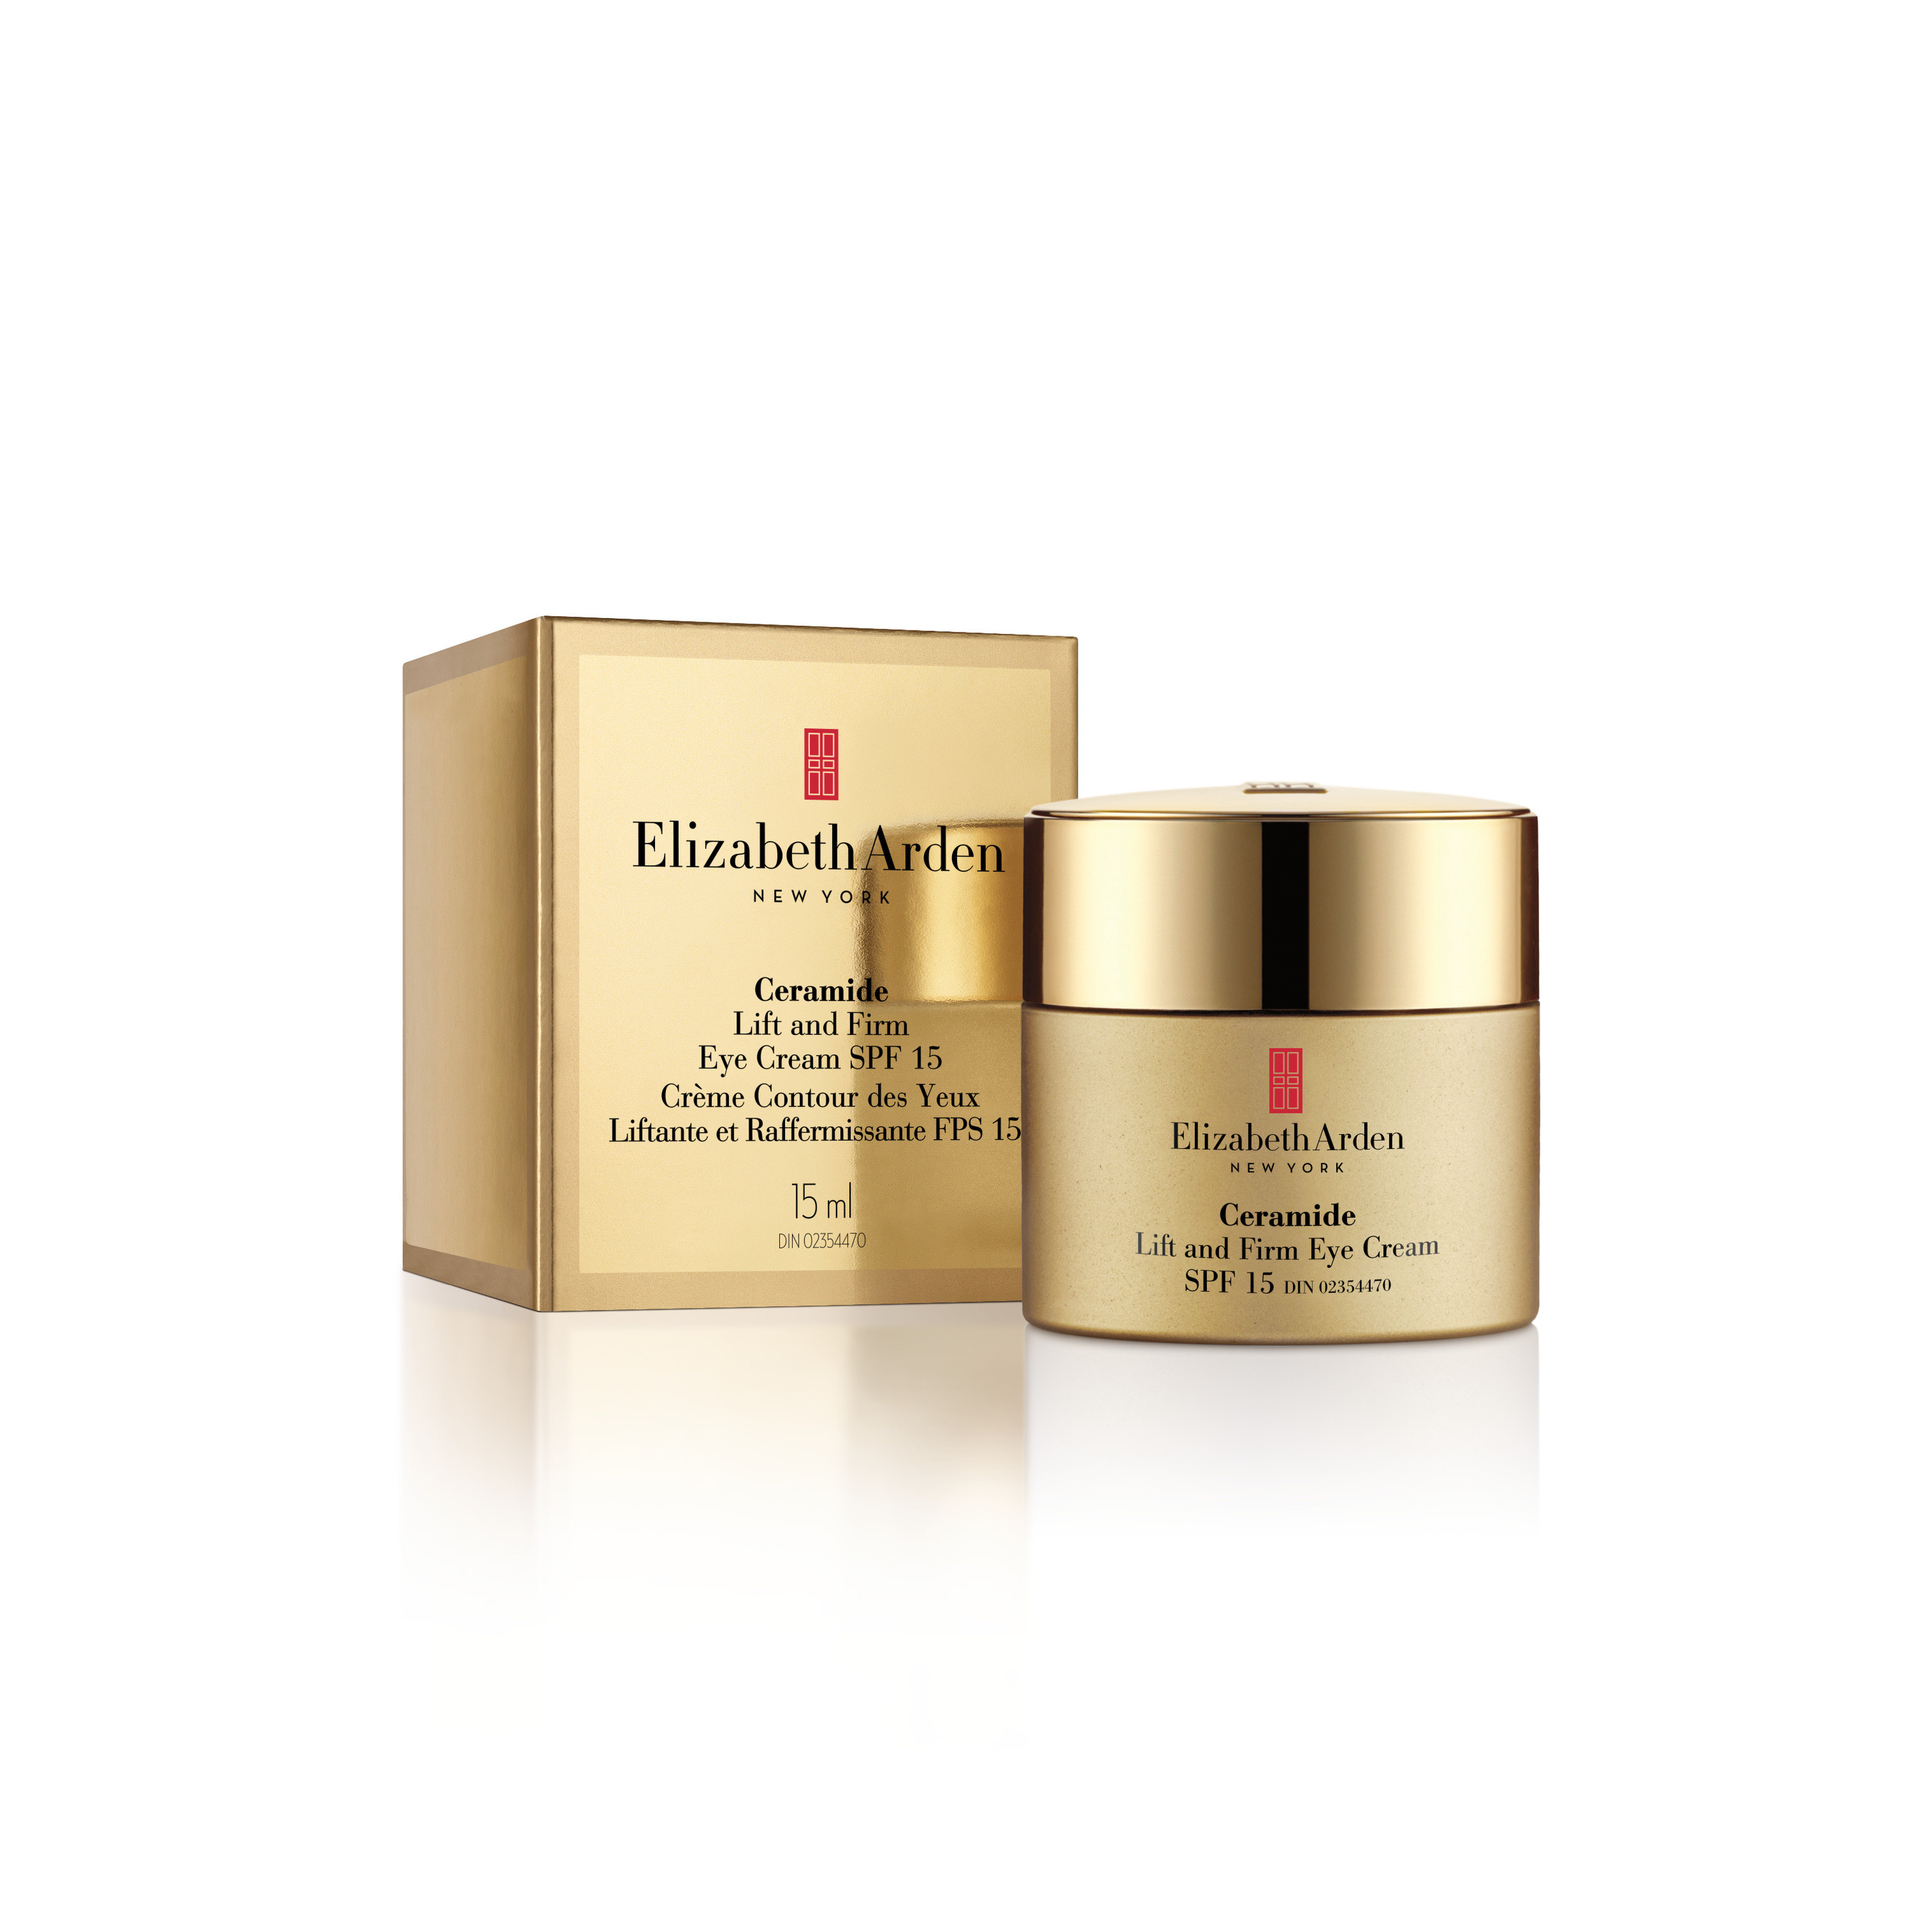 Ceramide lift and firm eye cream sunscreen spf 15 - 14,4 gr, Giallo oro, large image number 1